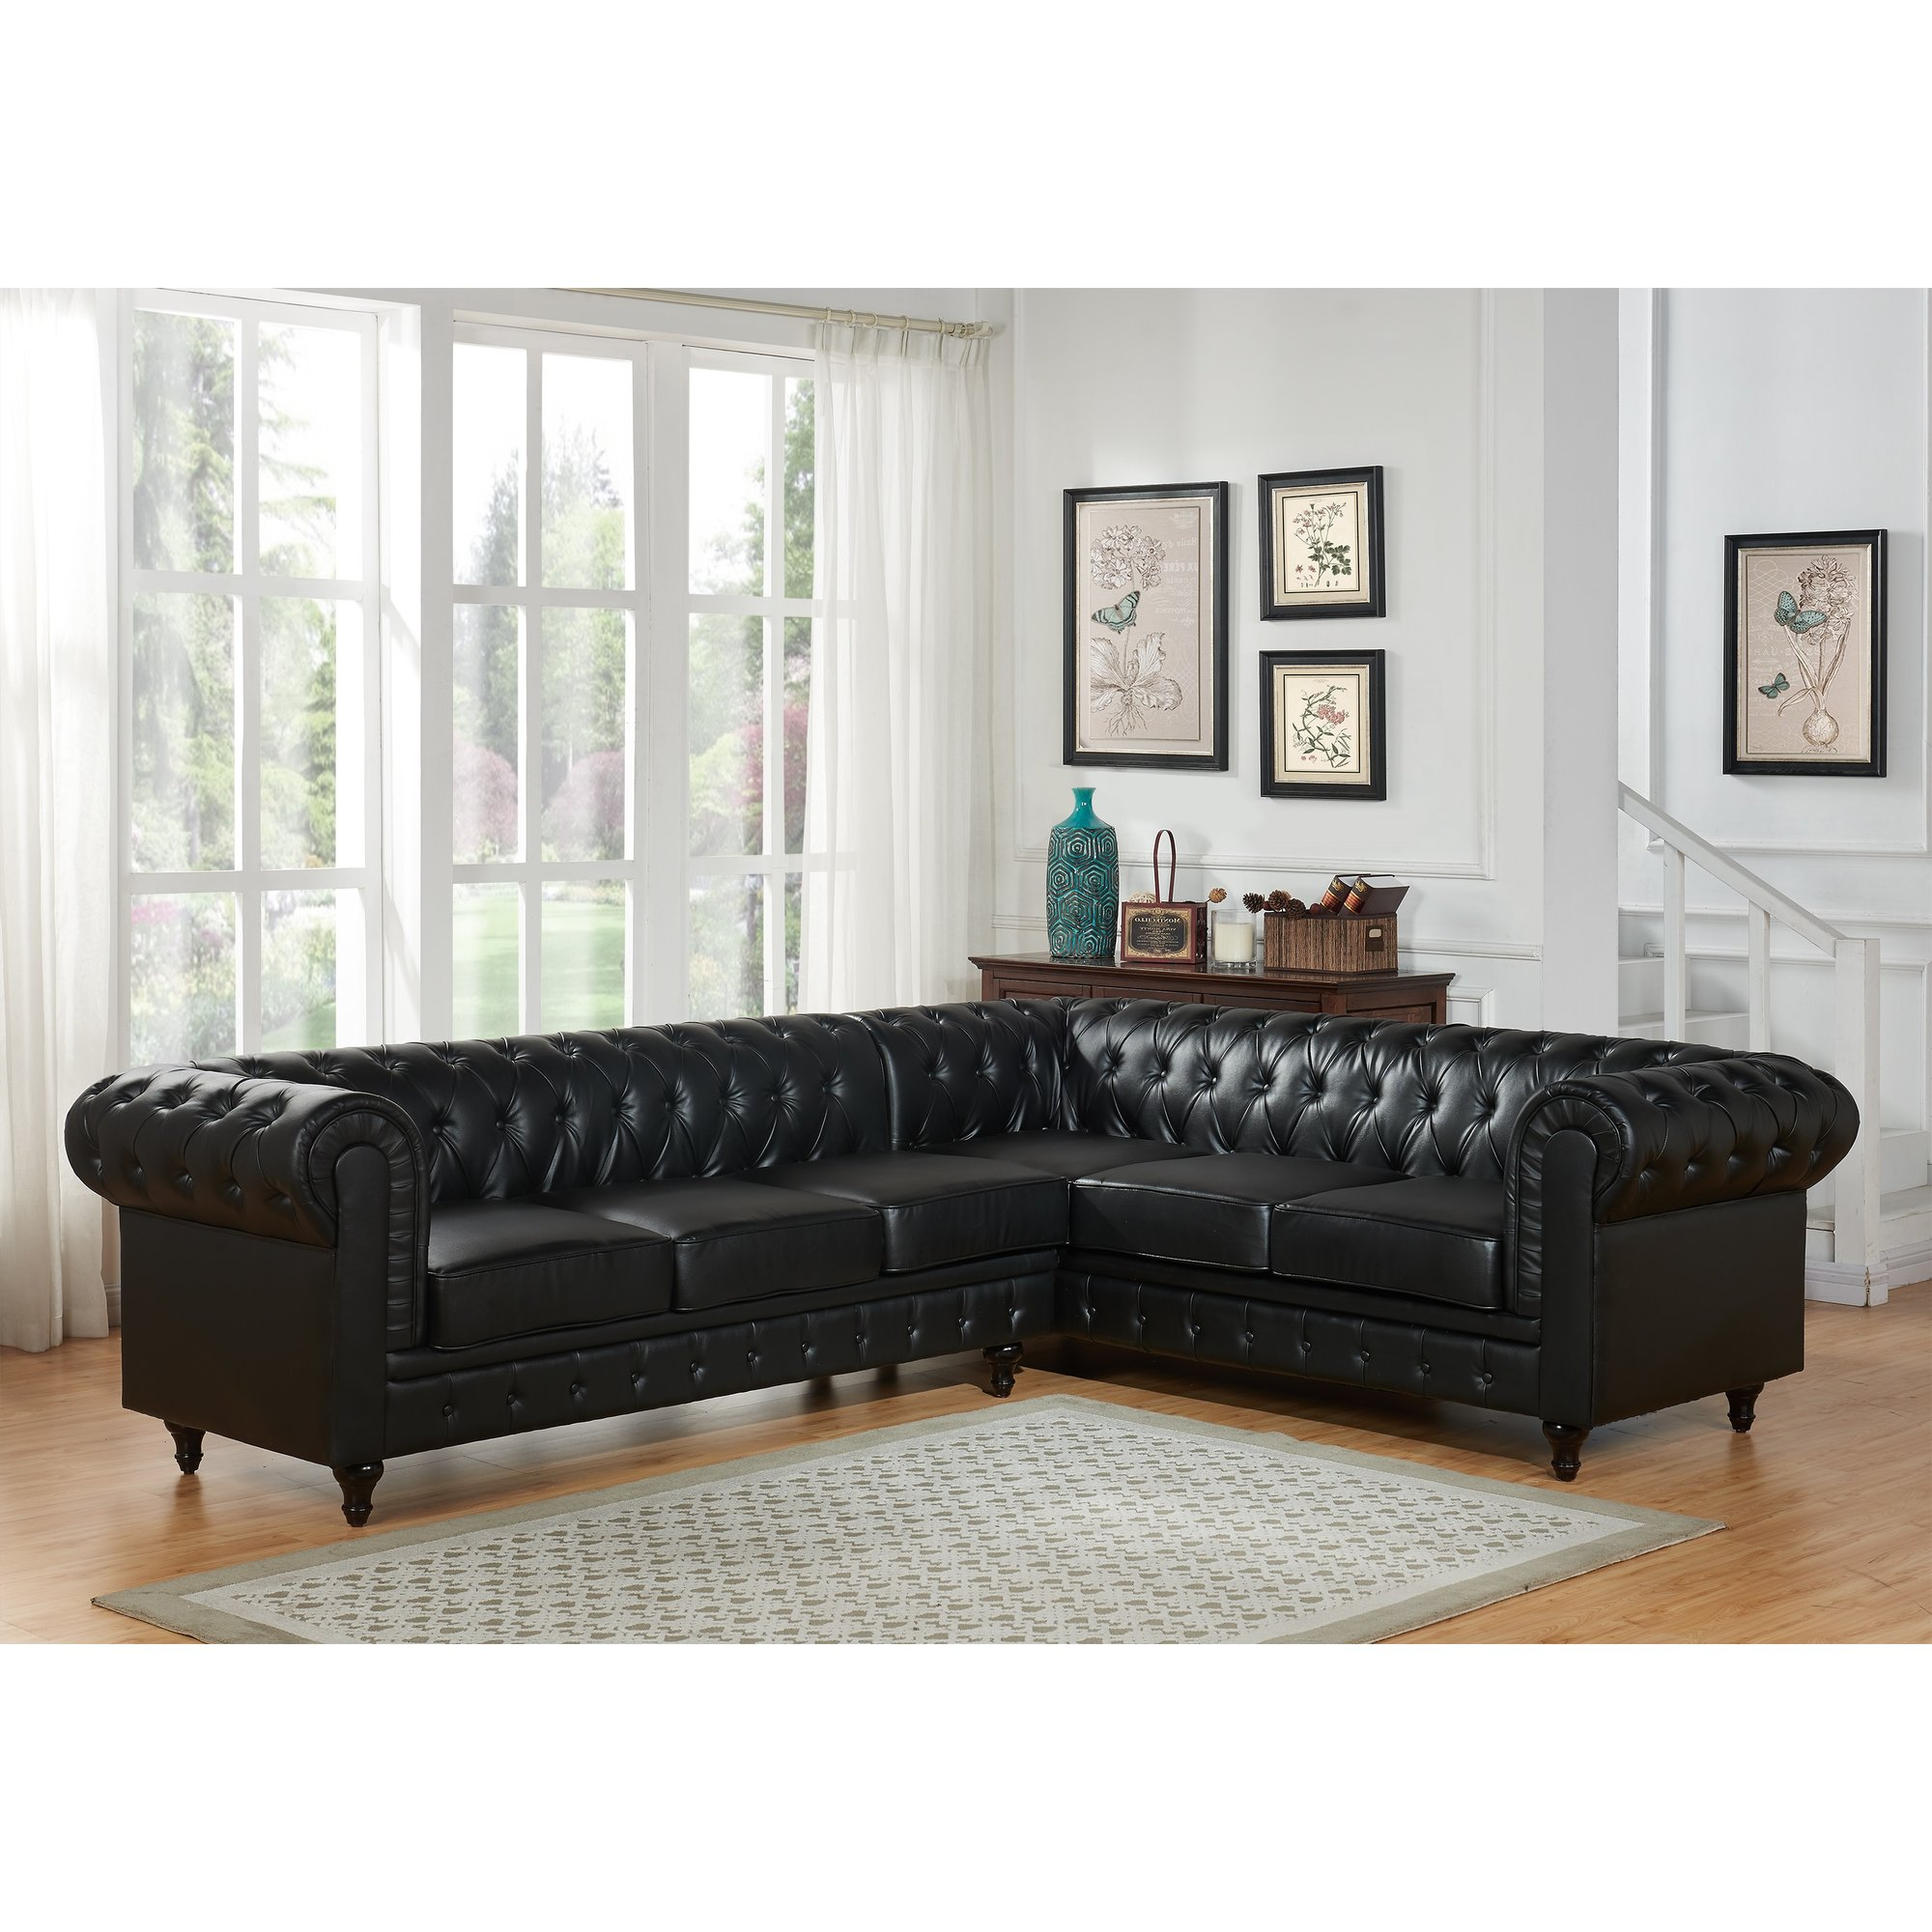 US Pride Furniture Sophia Classic Button Tufted Fabric Upholstered 2-Pc Left Facing Sectional Sofa, Black, S0098L-2PC